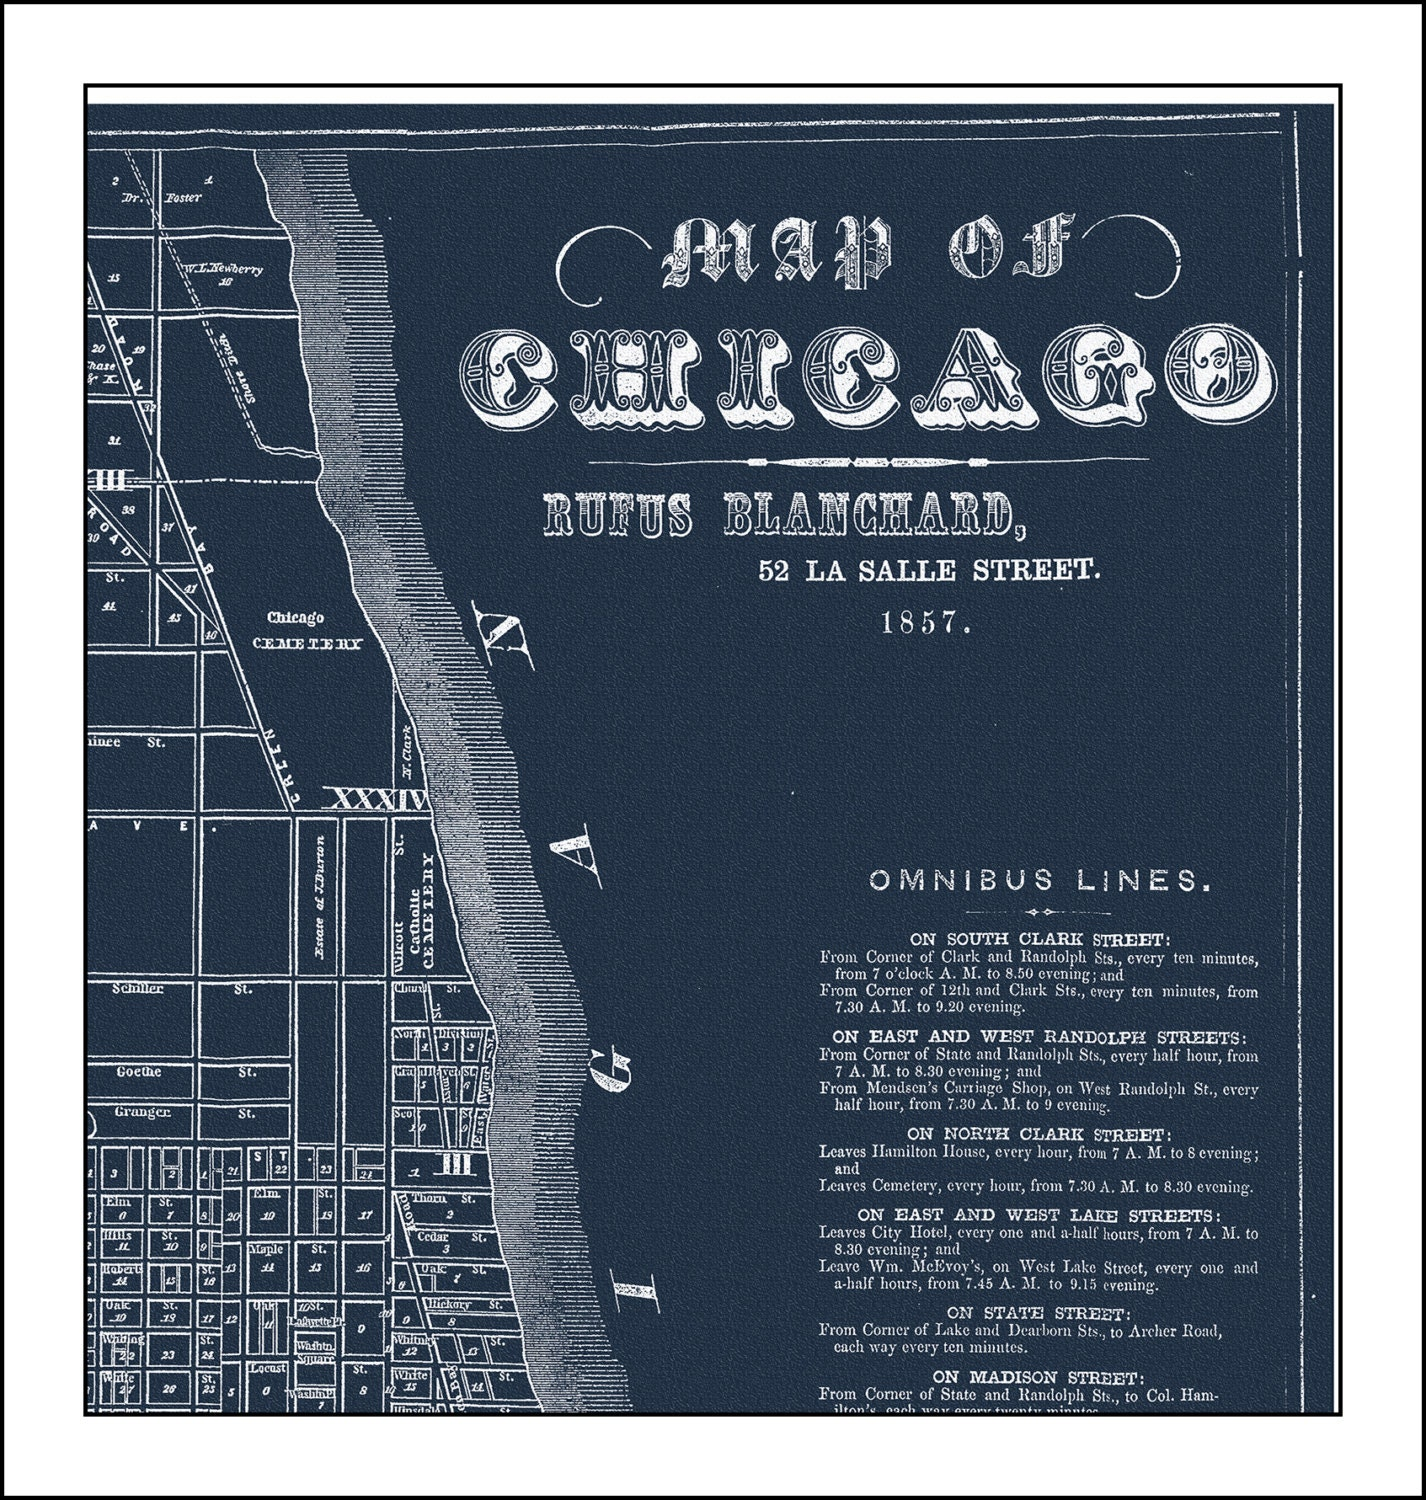 Chicago map map of chicago chicago street map blueprint map chicago map map of chicago chicago street map blueprint map chicago 1857 vintage map malvernweather Image collections